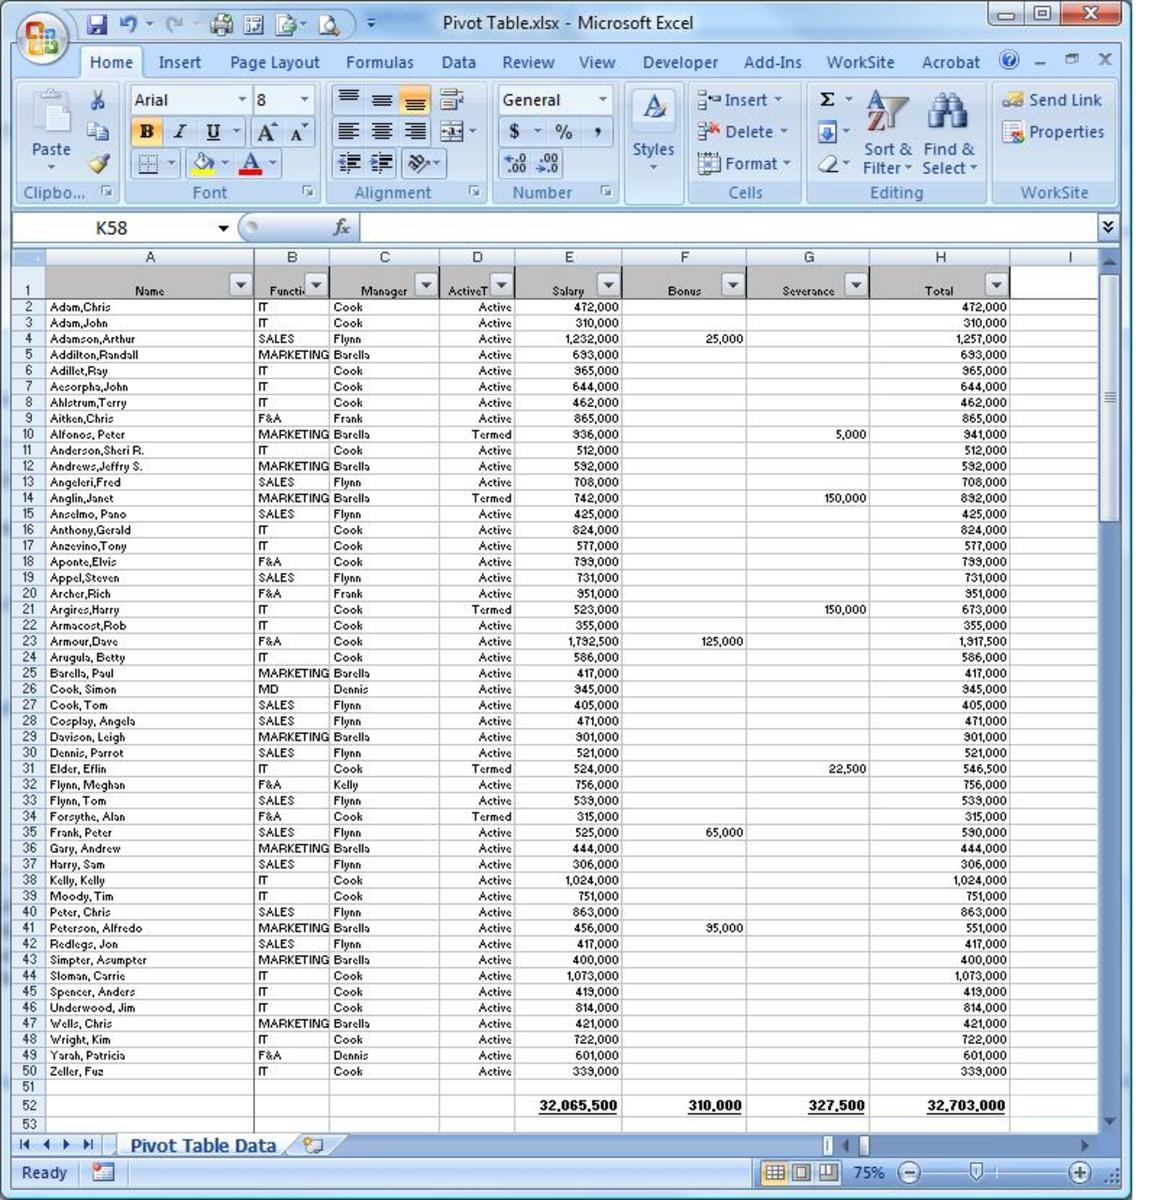 The Pivot Table data